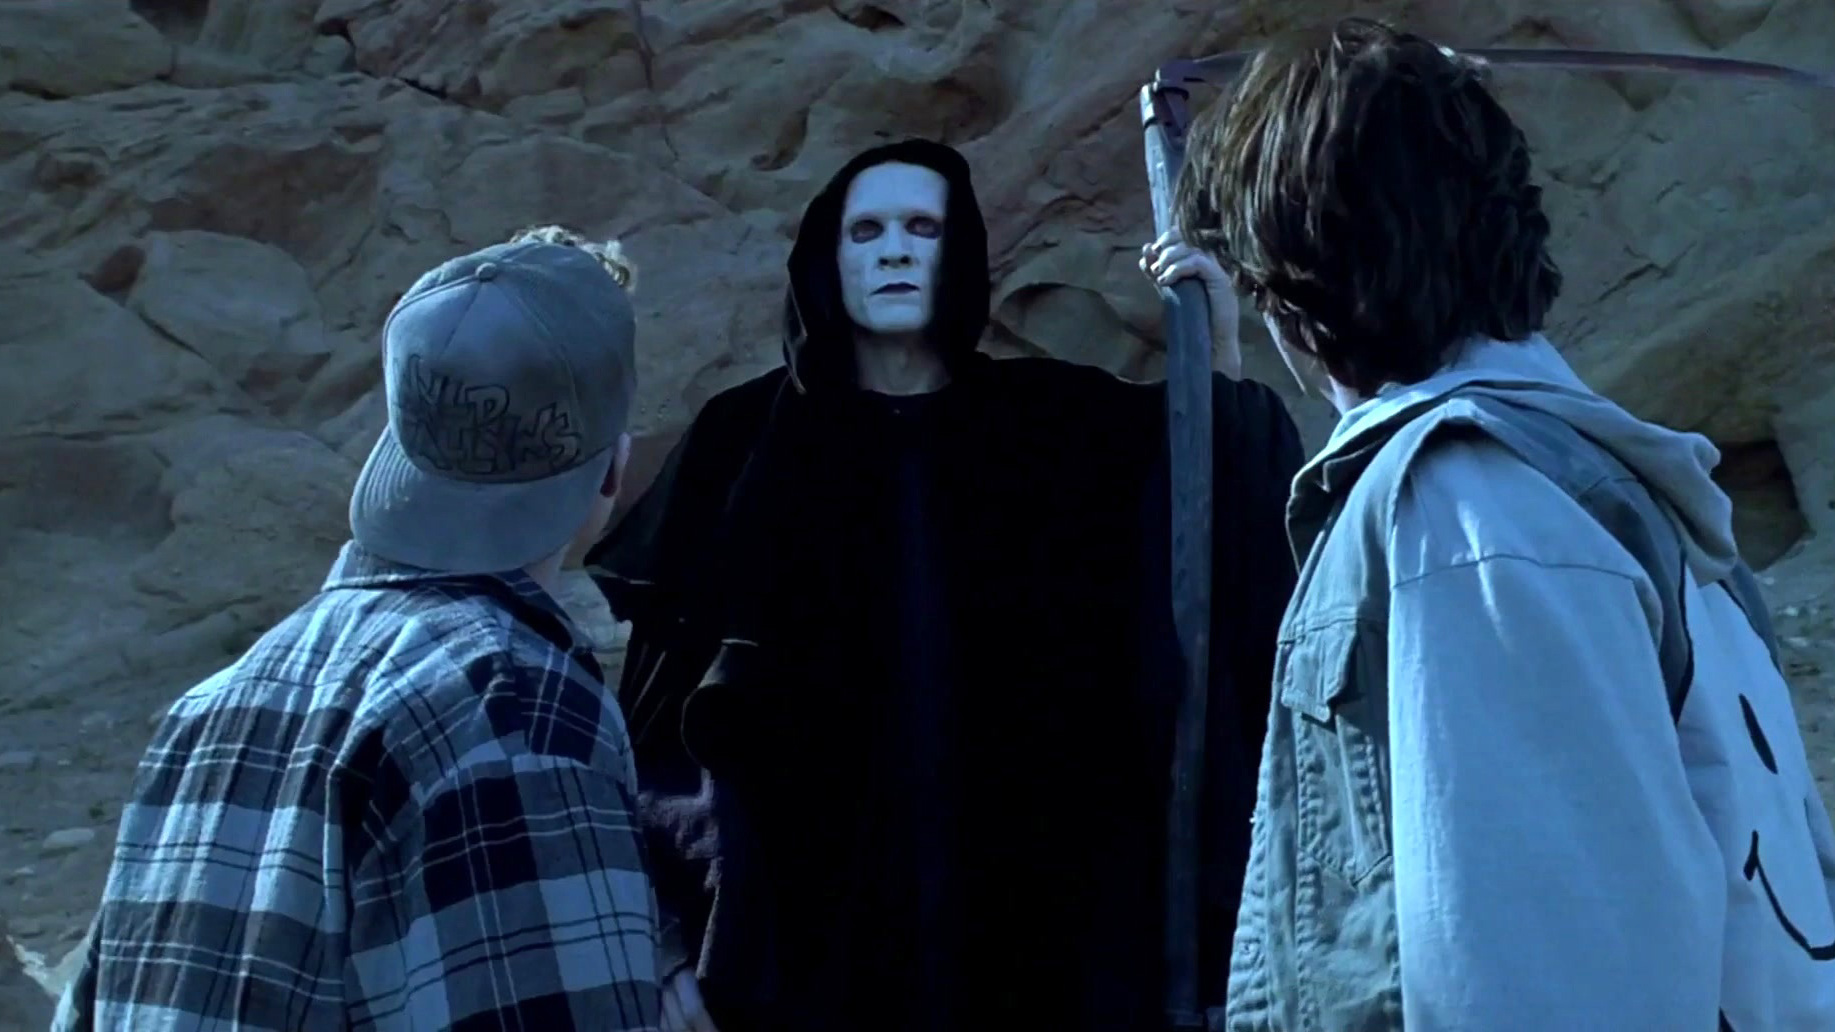 Bill & Ted's Bogus Journey: Bill & Ted Meet Death and Go to Hell